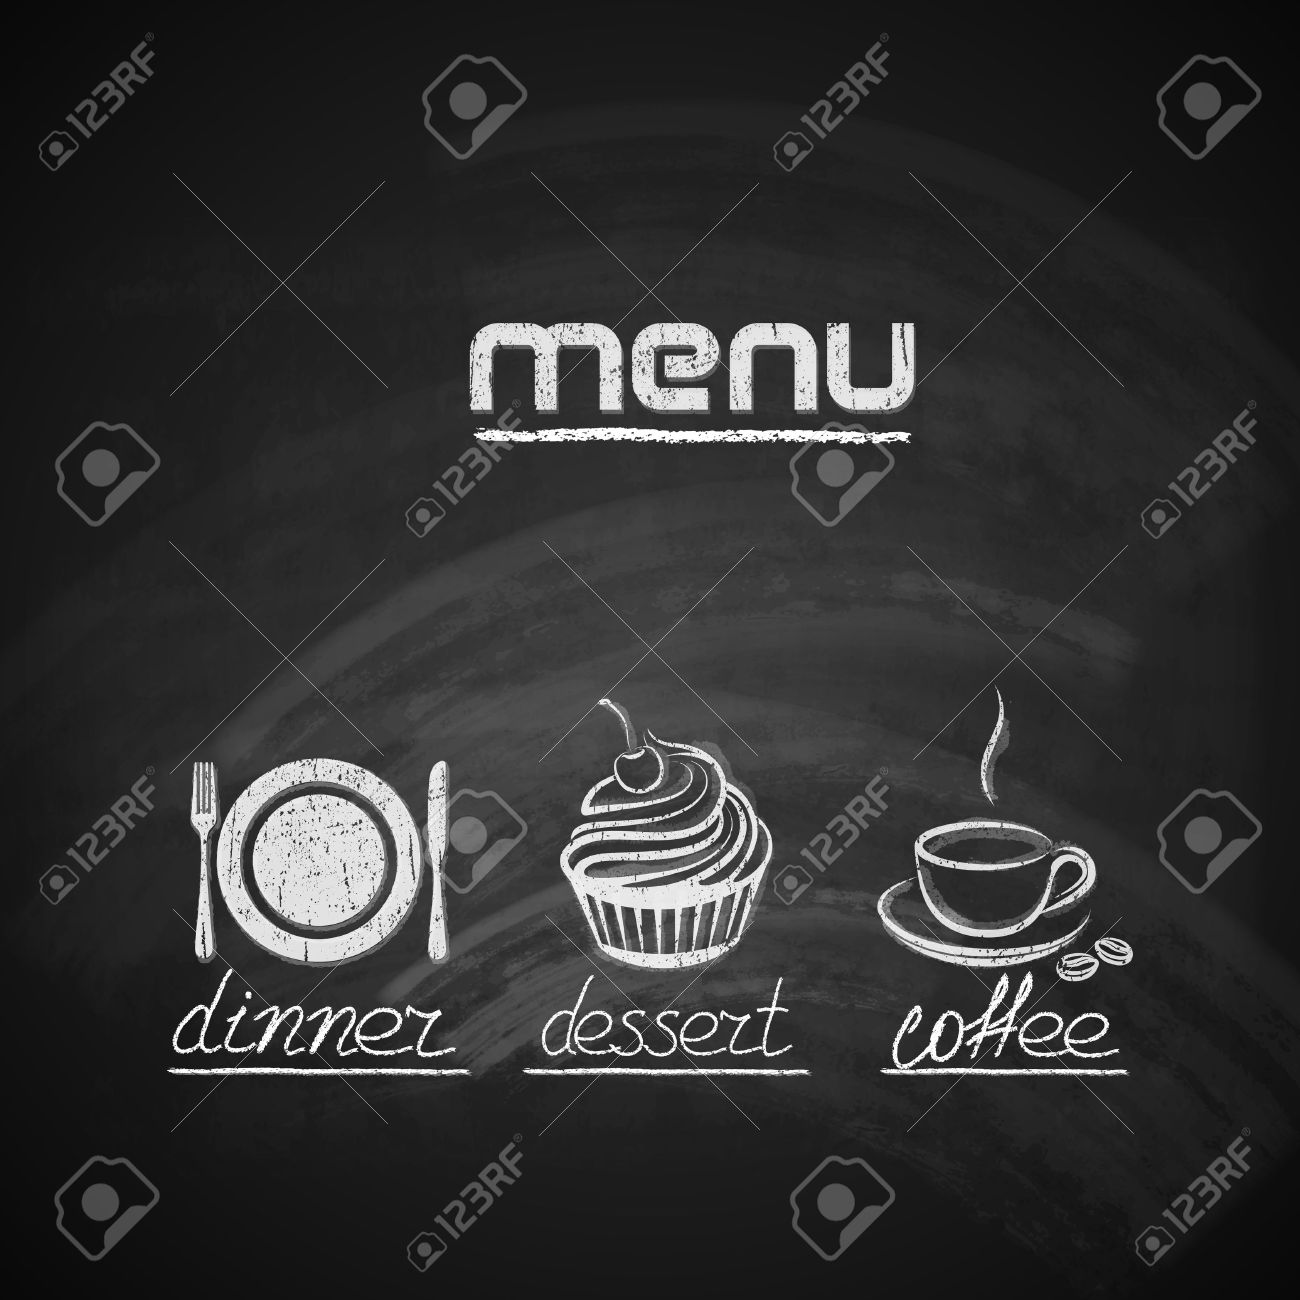 Retro Chalkboards For Kitchen 7334 Restaurant Menu Board Cliparts Stock Vector And Royalty